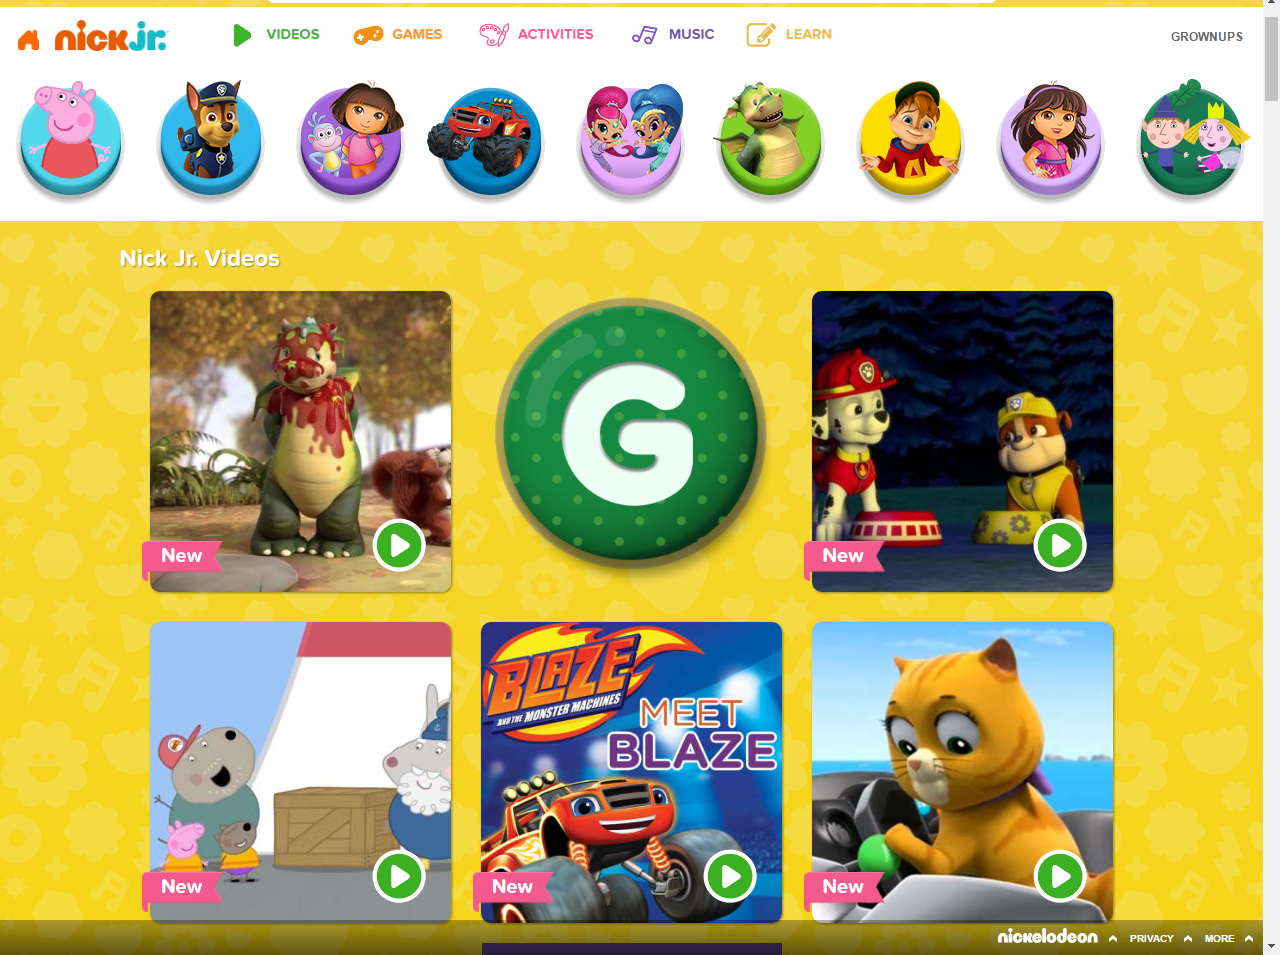 NickJr.co.uk Groups